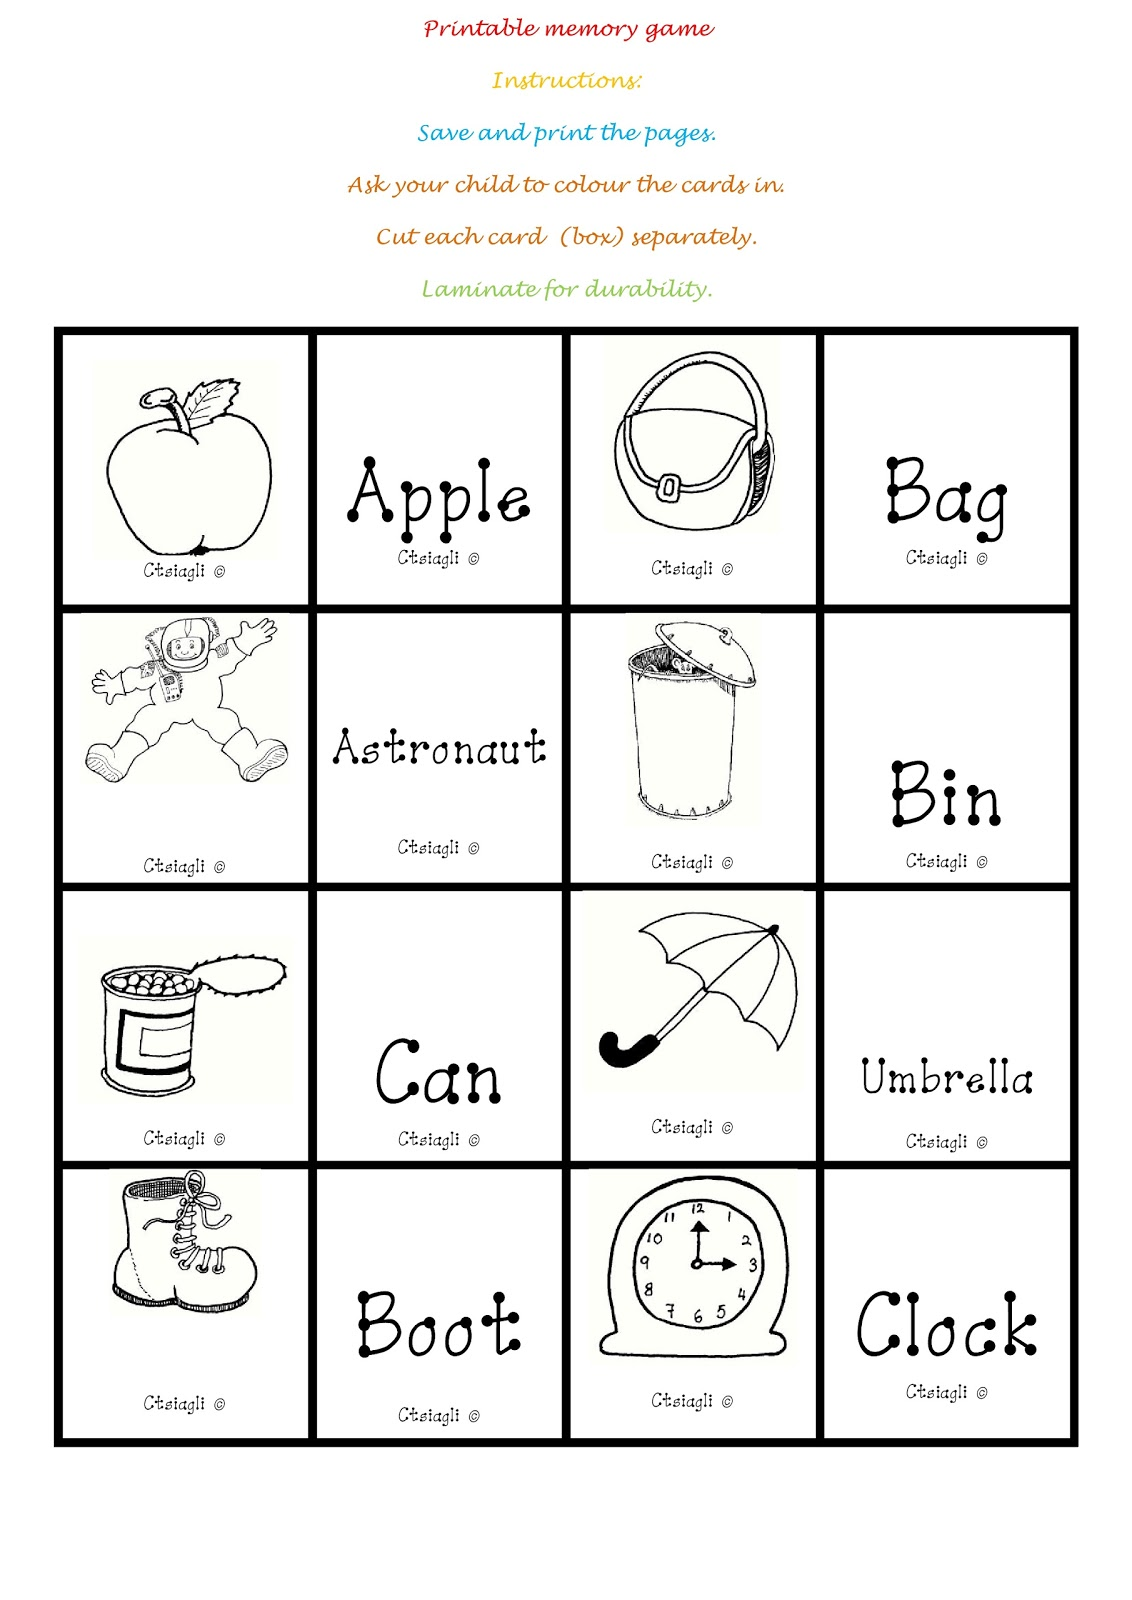 Printable Brain Games Printabletemplates